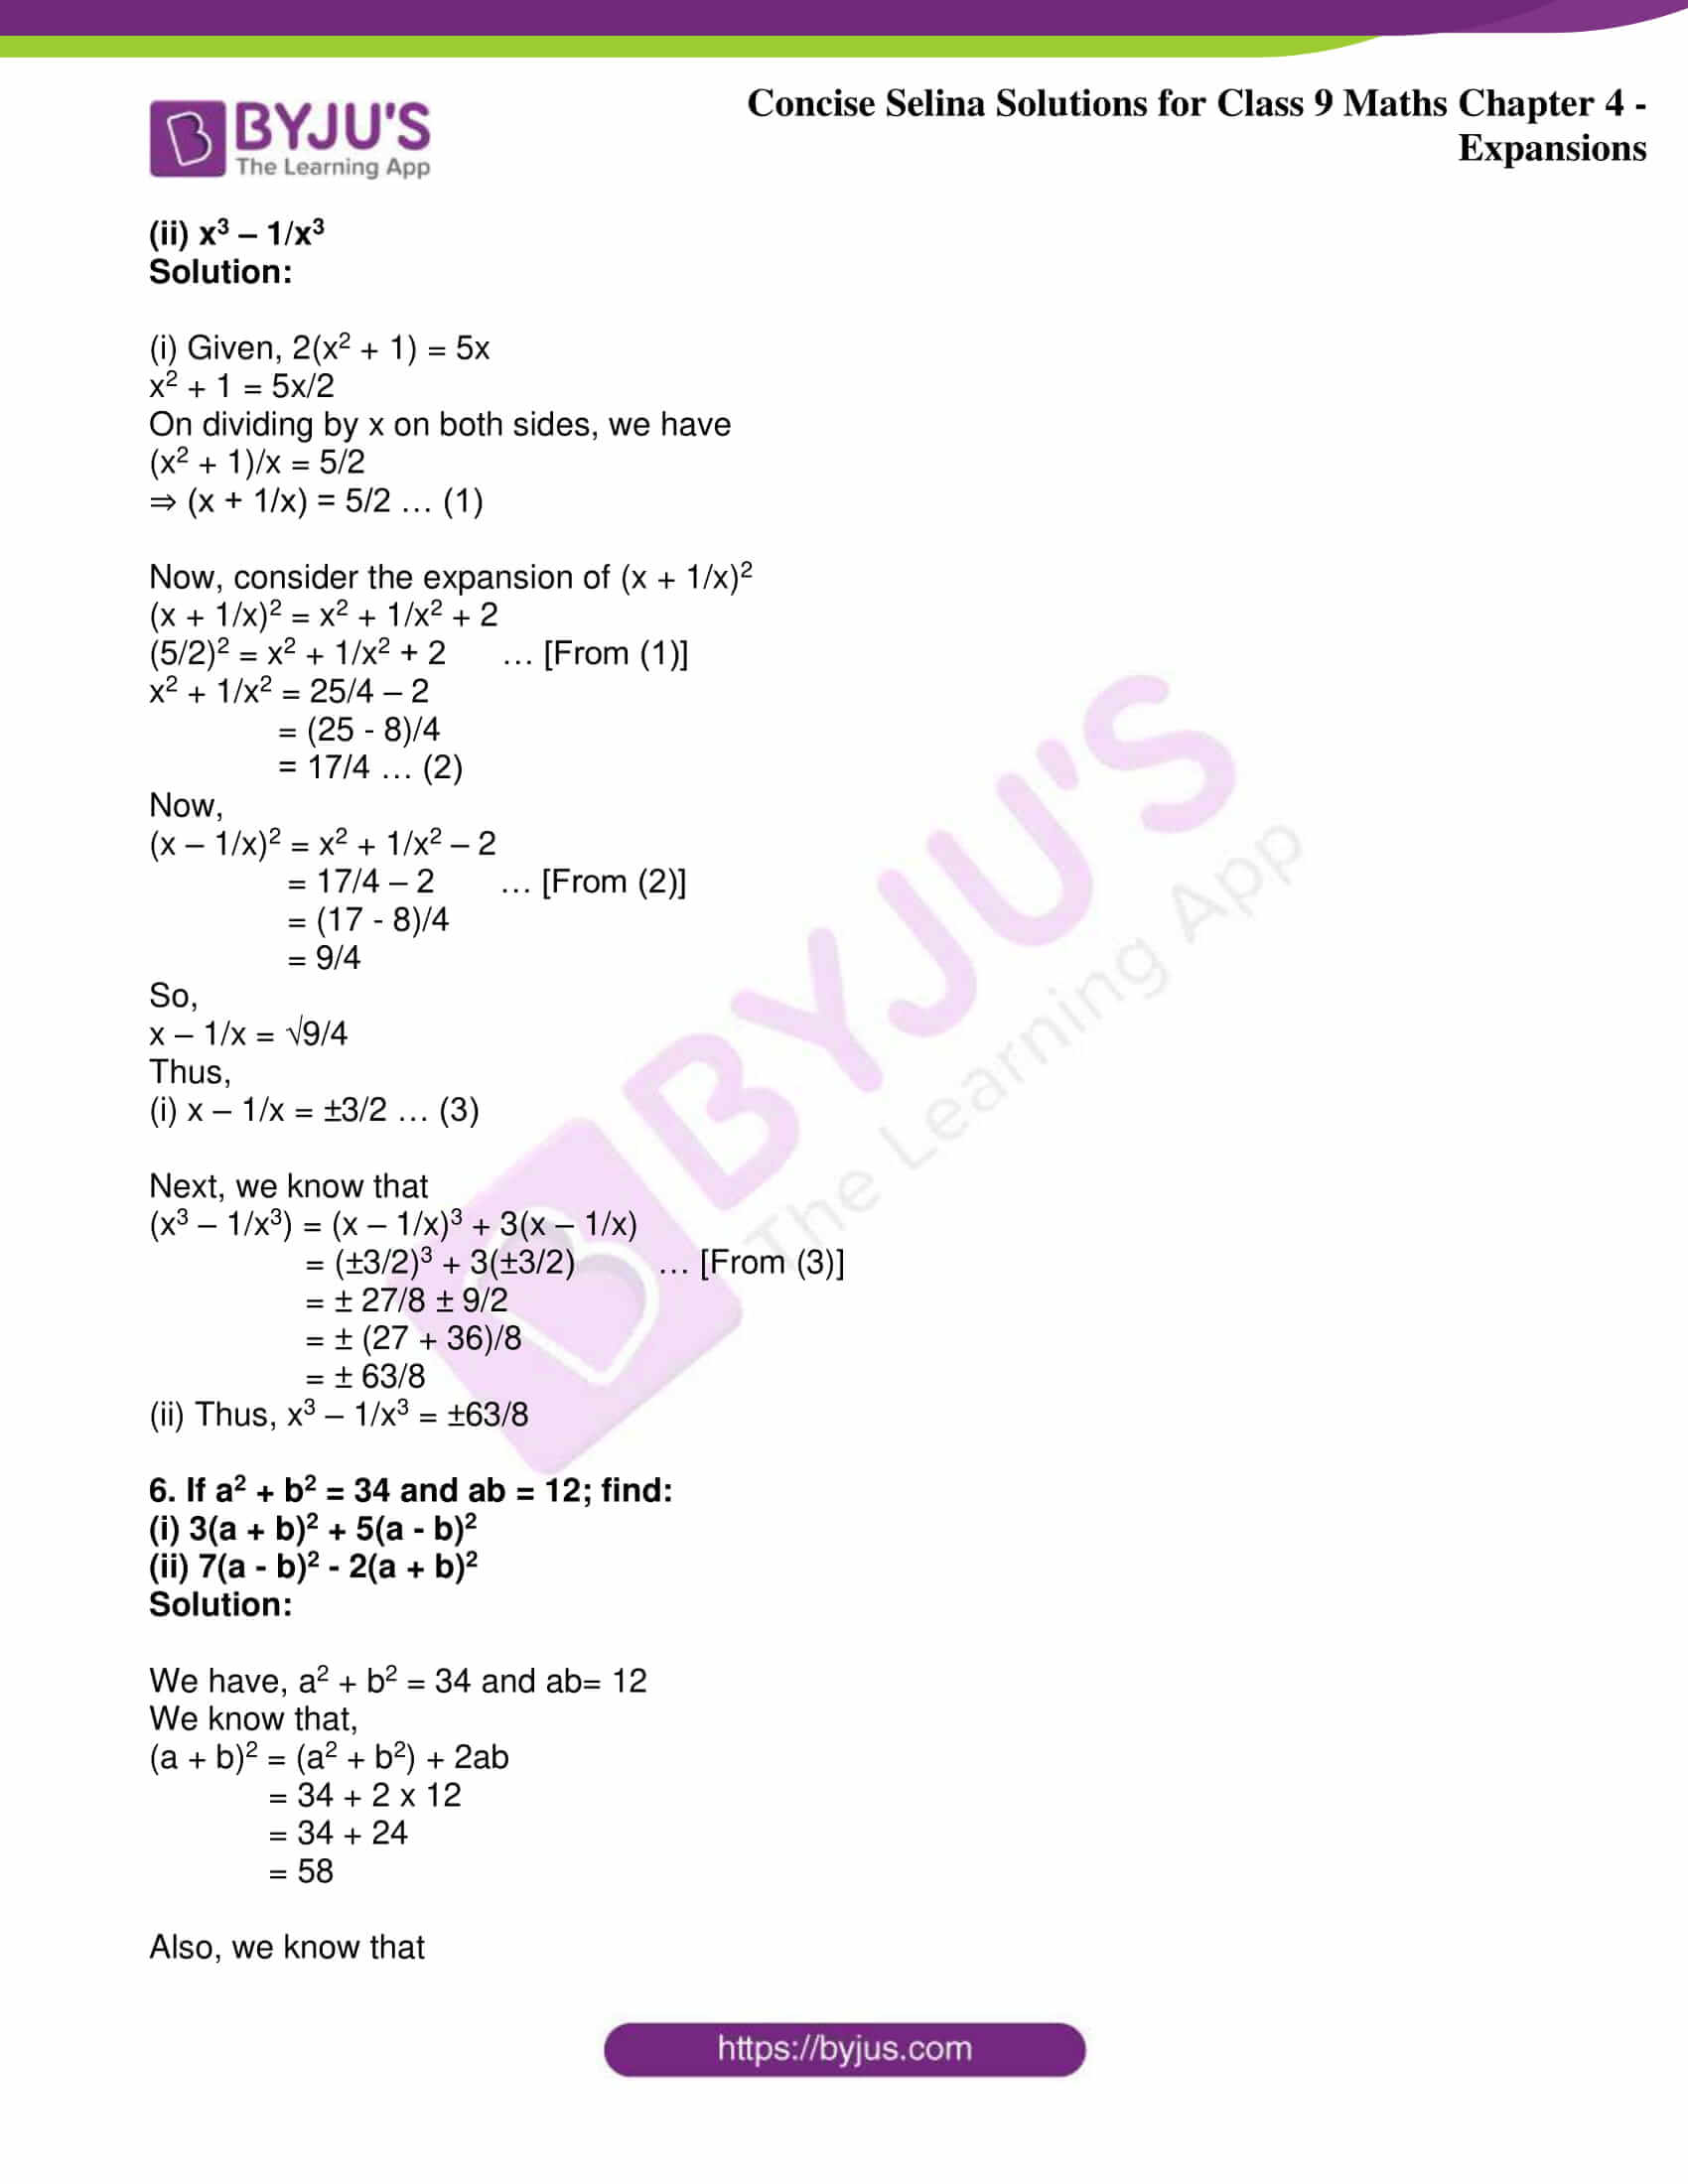 icse class 9 maths may10 selina solutions chapter 4 expansions 23